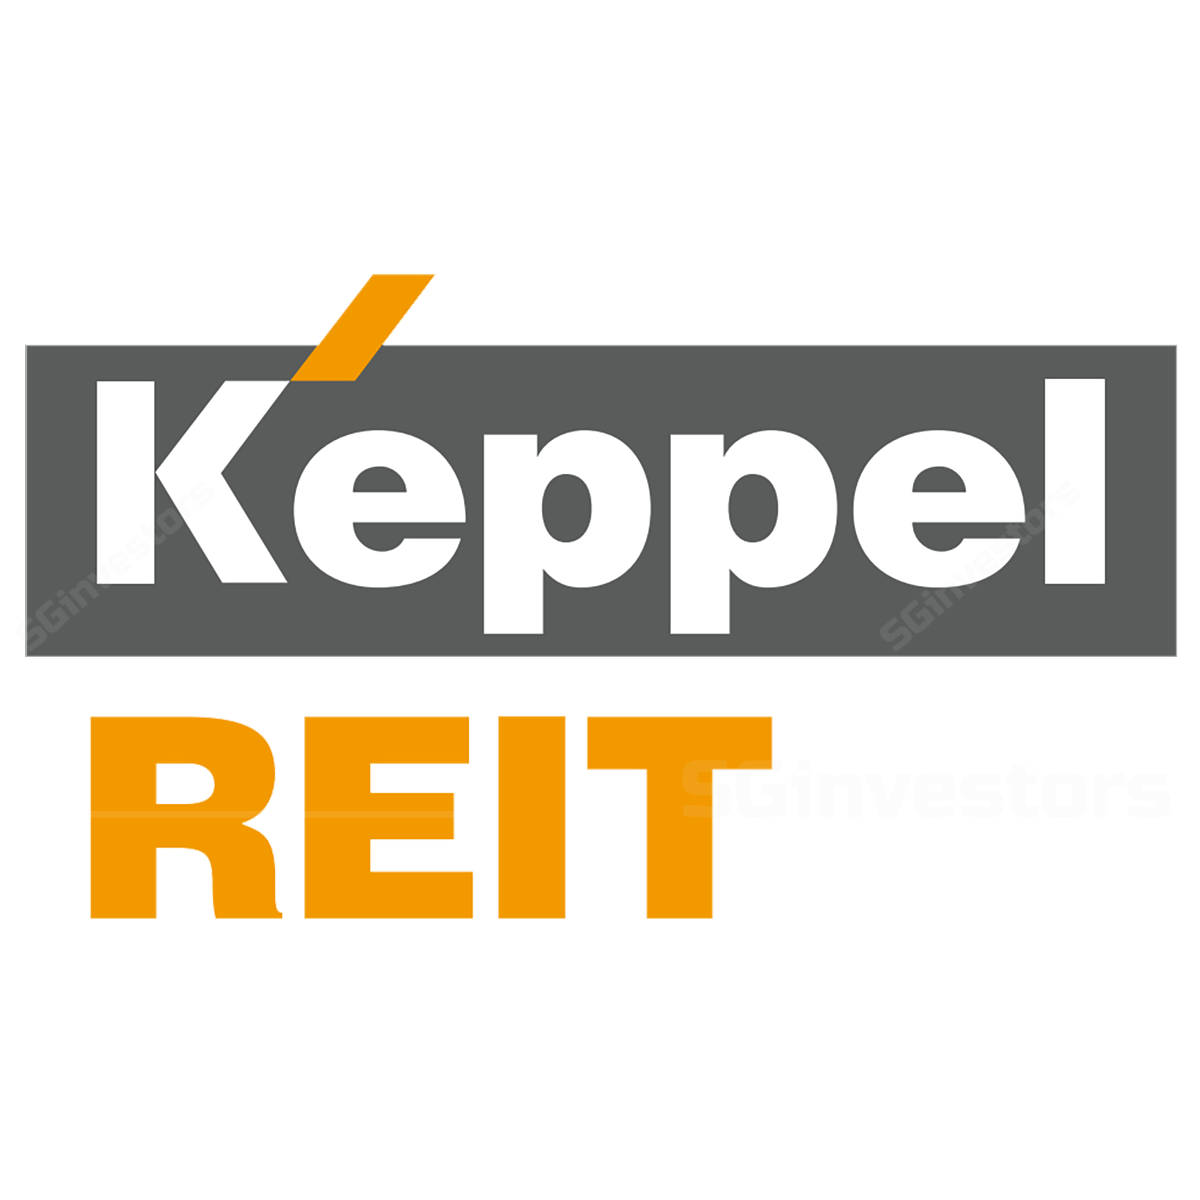 Keppel REIT - CIMB Research 2017-01-24: Subdued near-term outlook